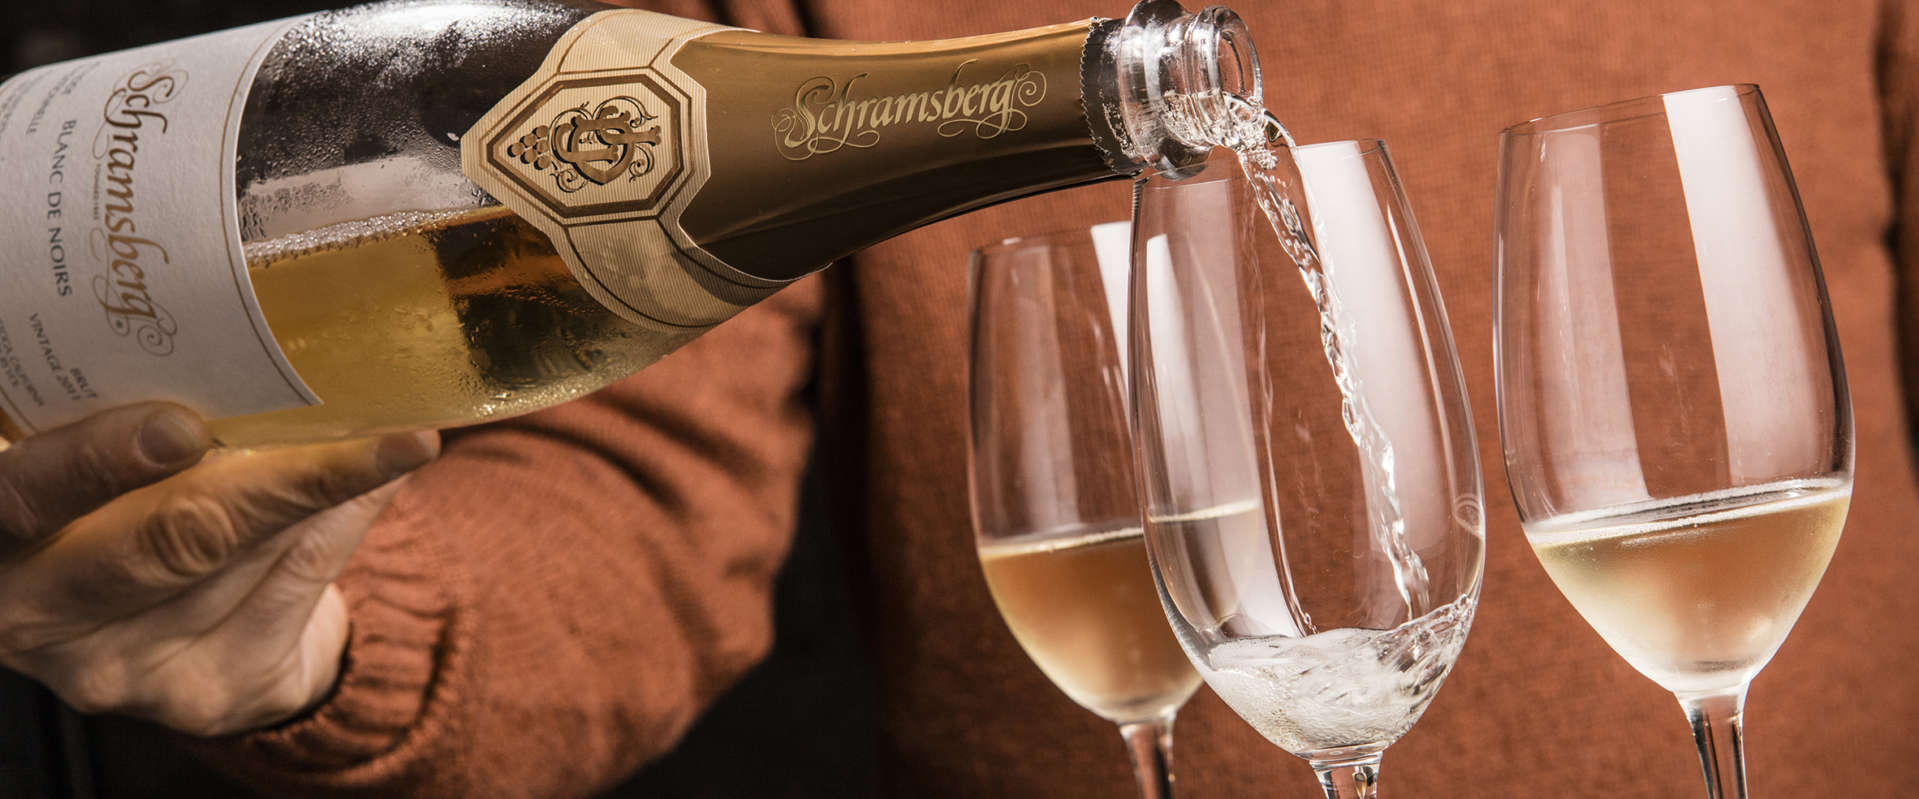 Pouring Blanc de Noirs sparkling wine into three wine glasses